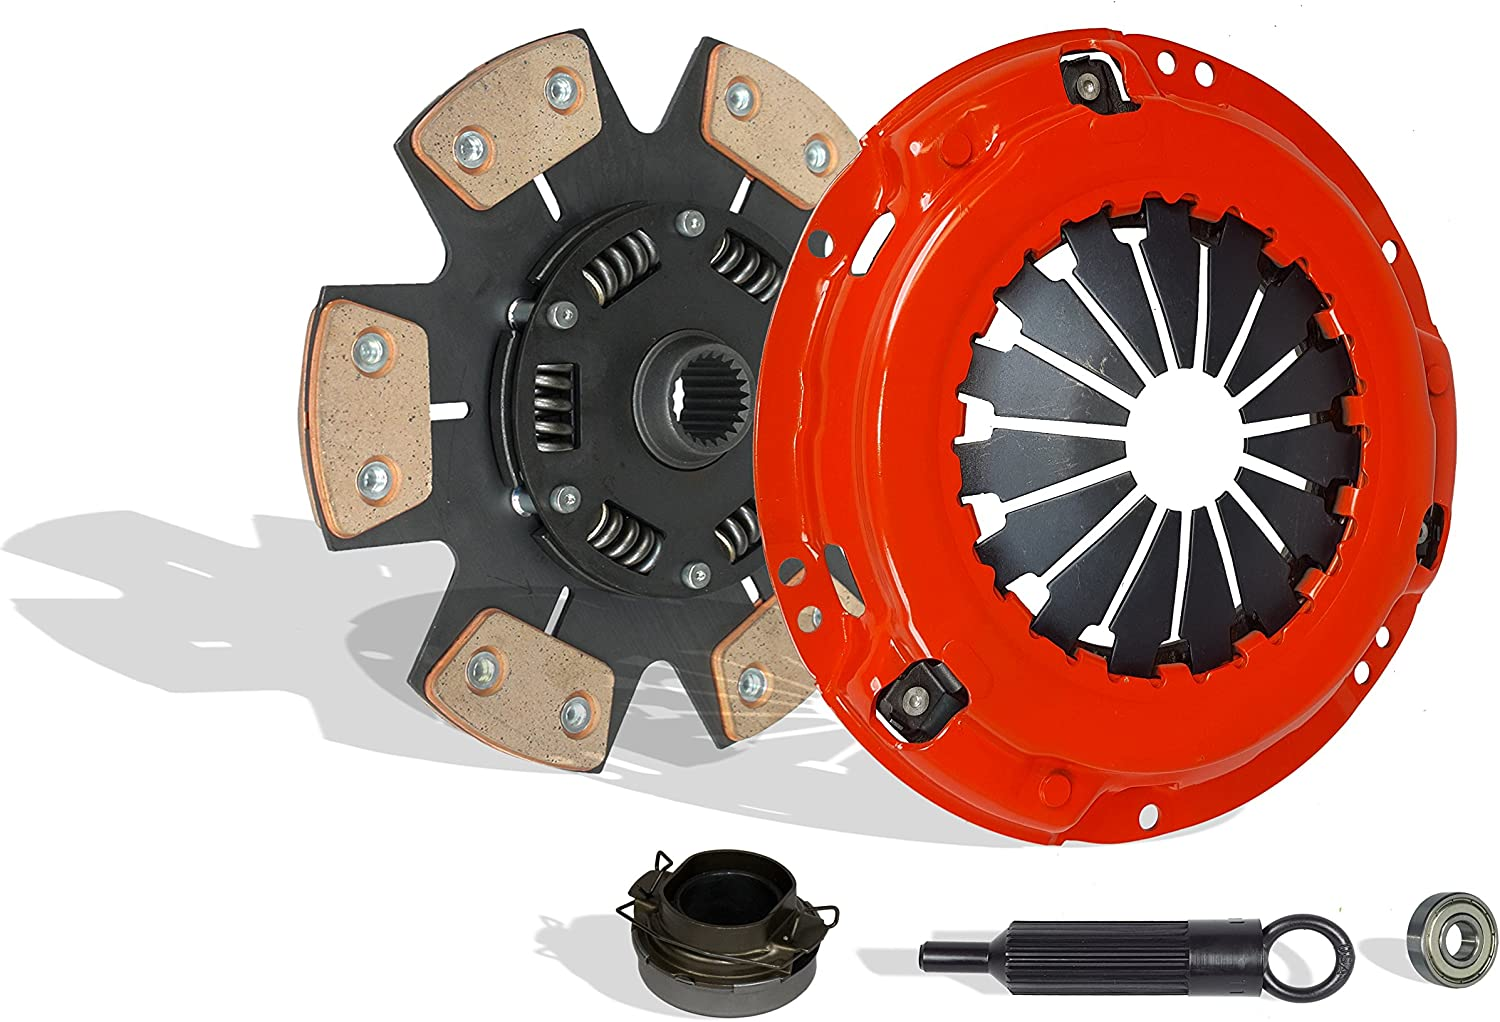 Clutch Kit Works With Toyota Pickup 4Runnner T100 SR5 DLX Base One-Ton Sport Extended Standard Pickup 1988-1995 3.0L V6 GAS SOHC Naturally Aspirated 6-Puck Disc Stage 3; 2Wd; 4Wd; Vin V 3Vze